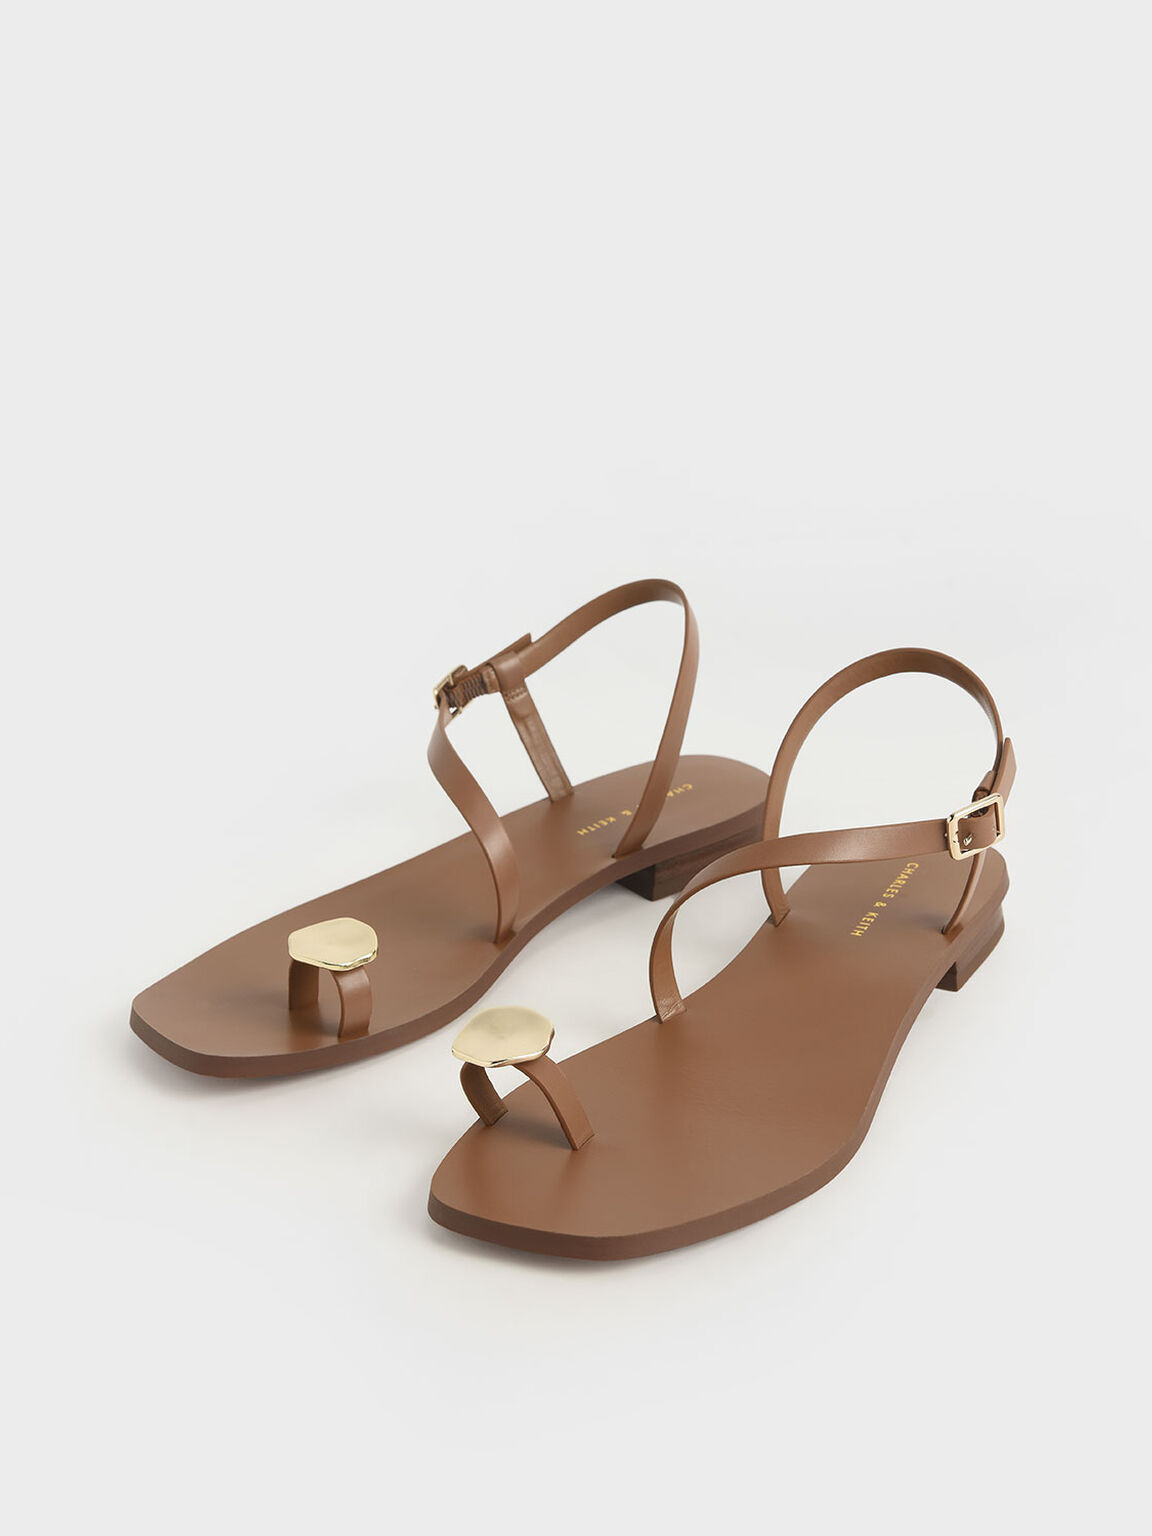 Metal Accent Toe Loop Sandals, Brown, hi-res